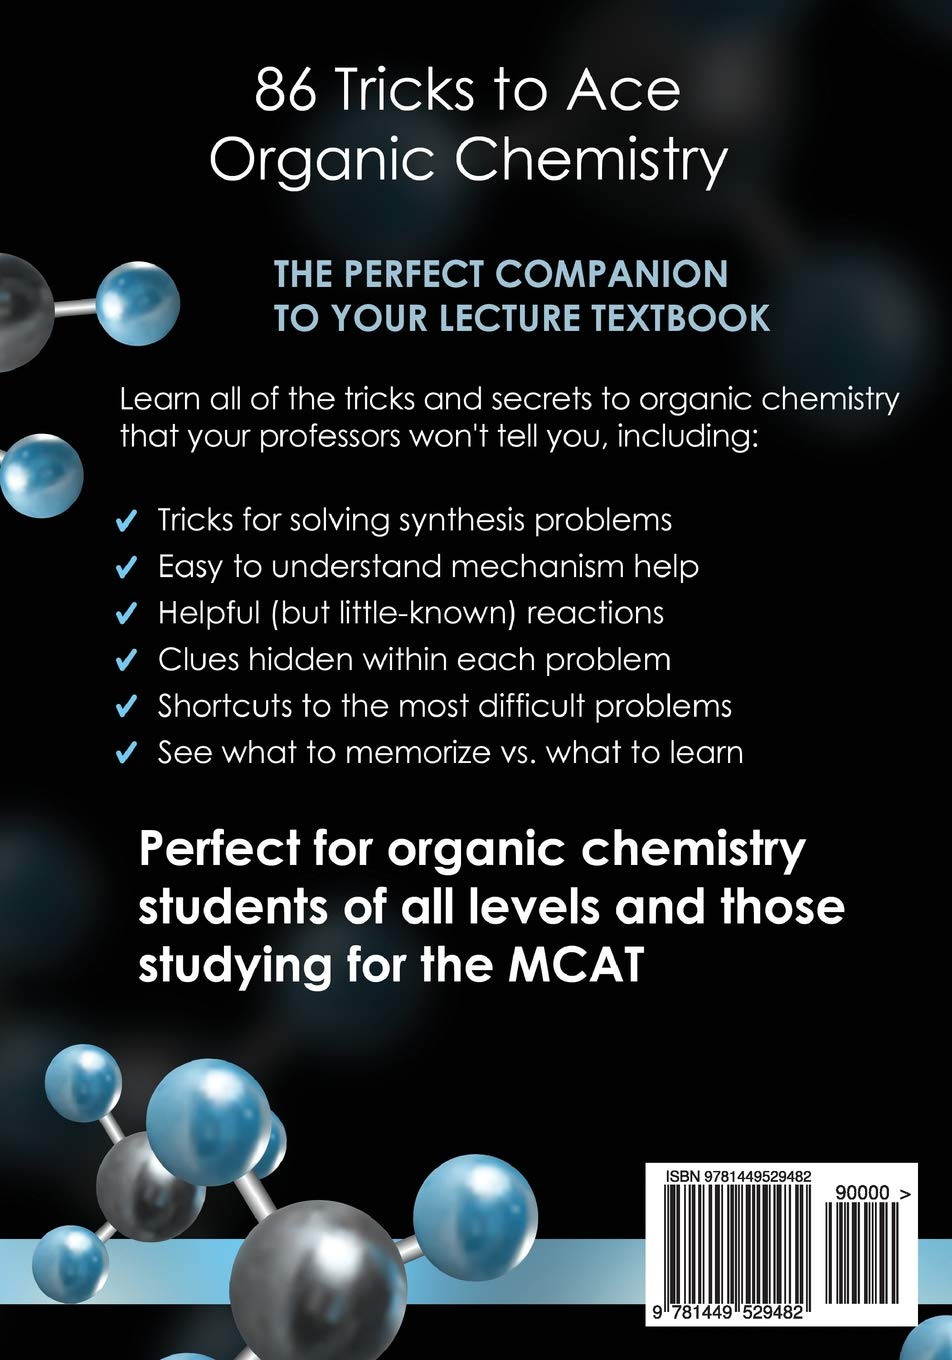 86 Tricks To Ace Organic Chemistry: Michael Pa